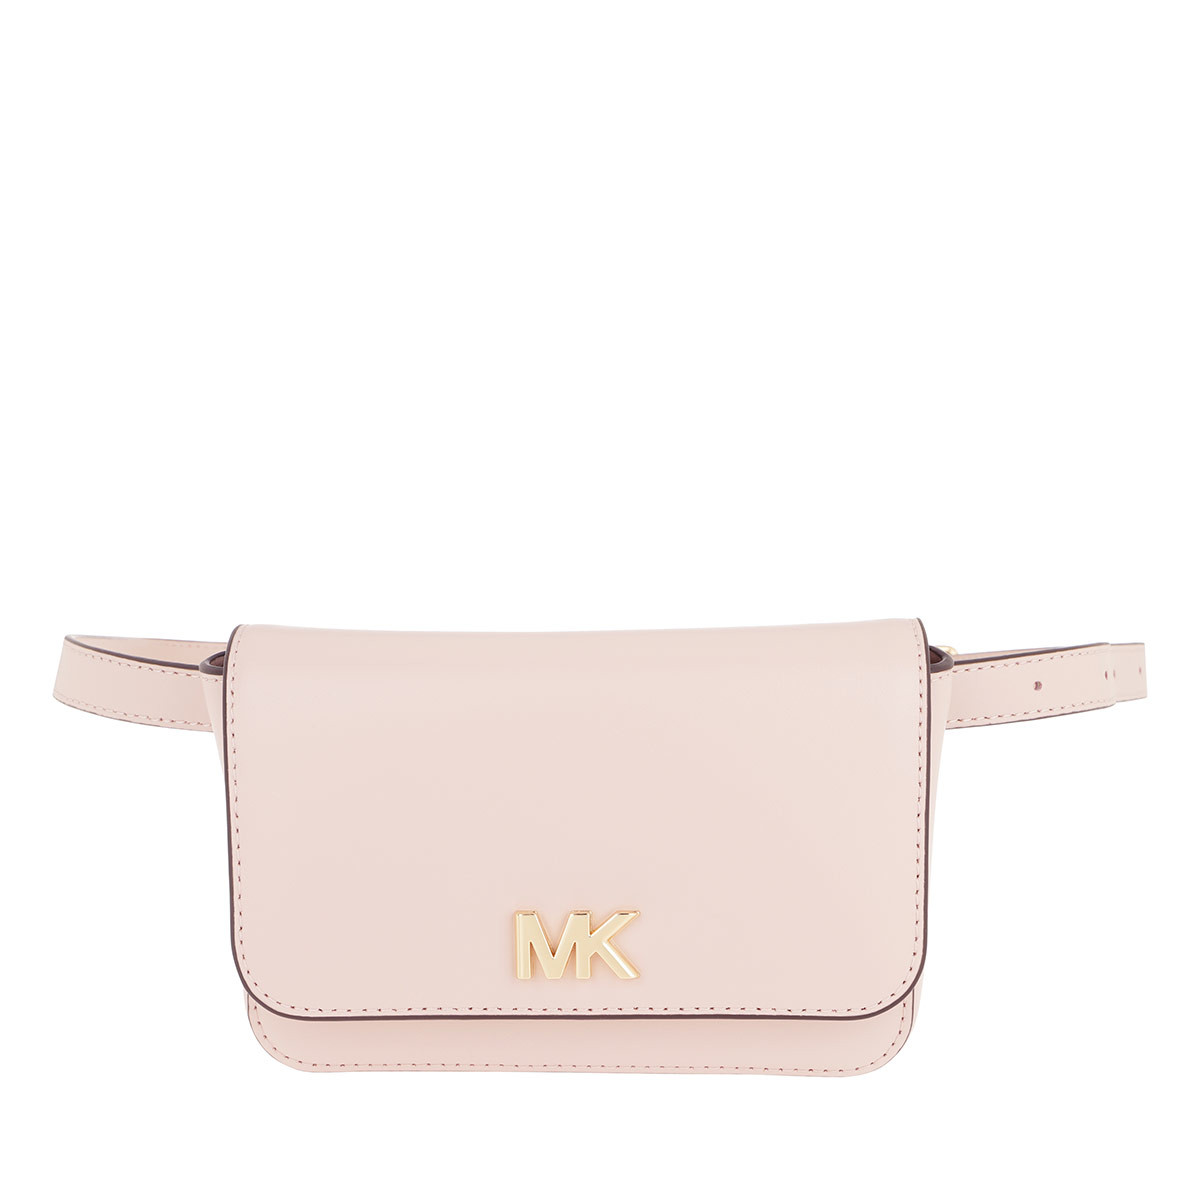 Michael Kors Gürteltasche - Mott Belt Bag Soft Pink - in rosa - für Damen